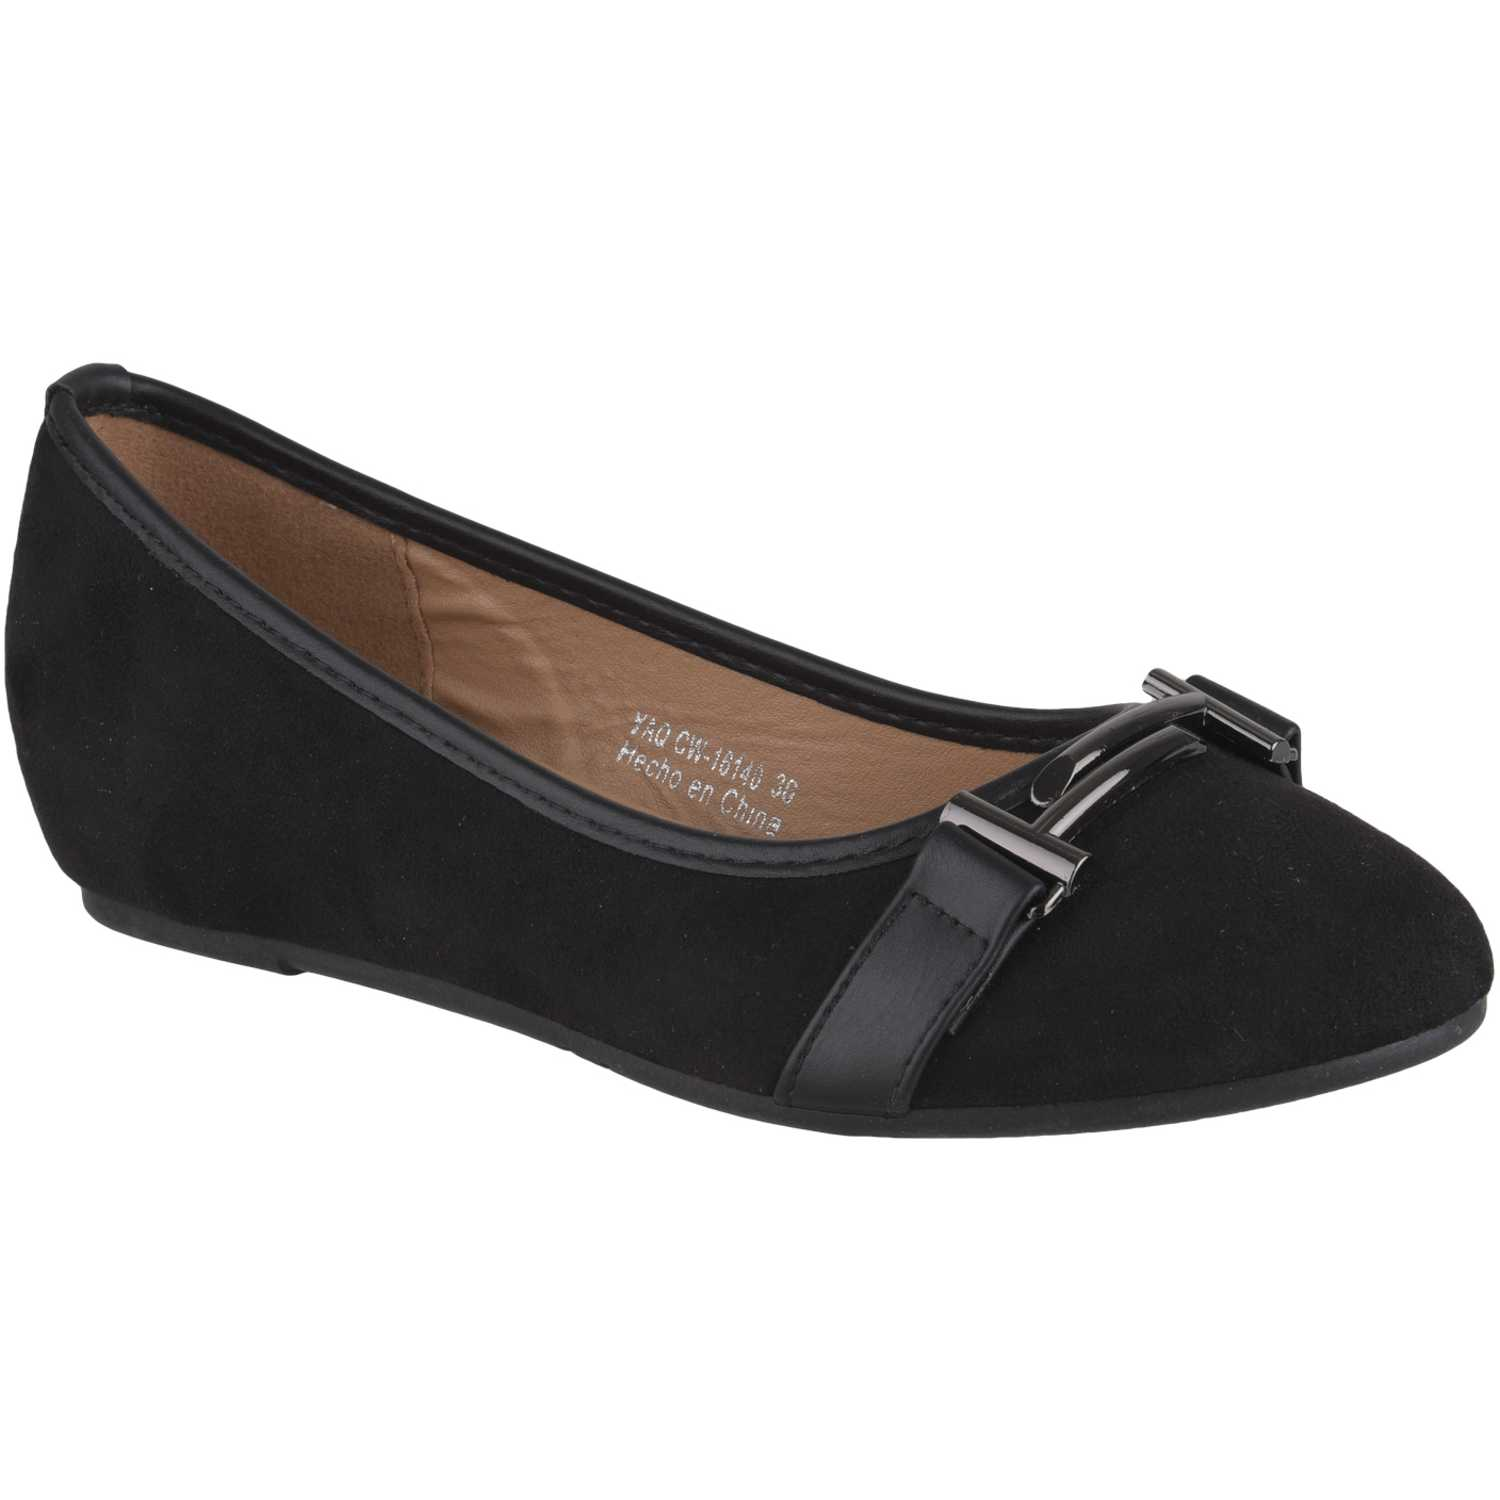 Platanitos cw-16140 Negro Estiletos y Pumps